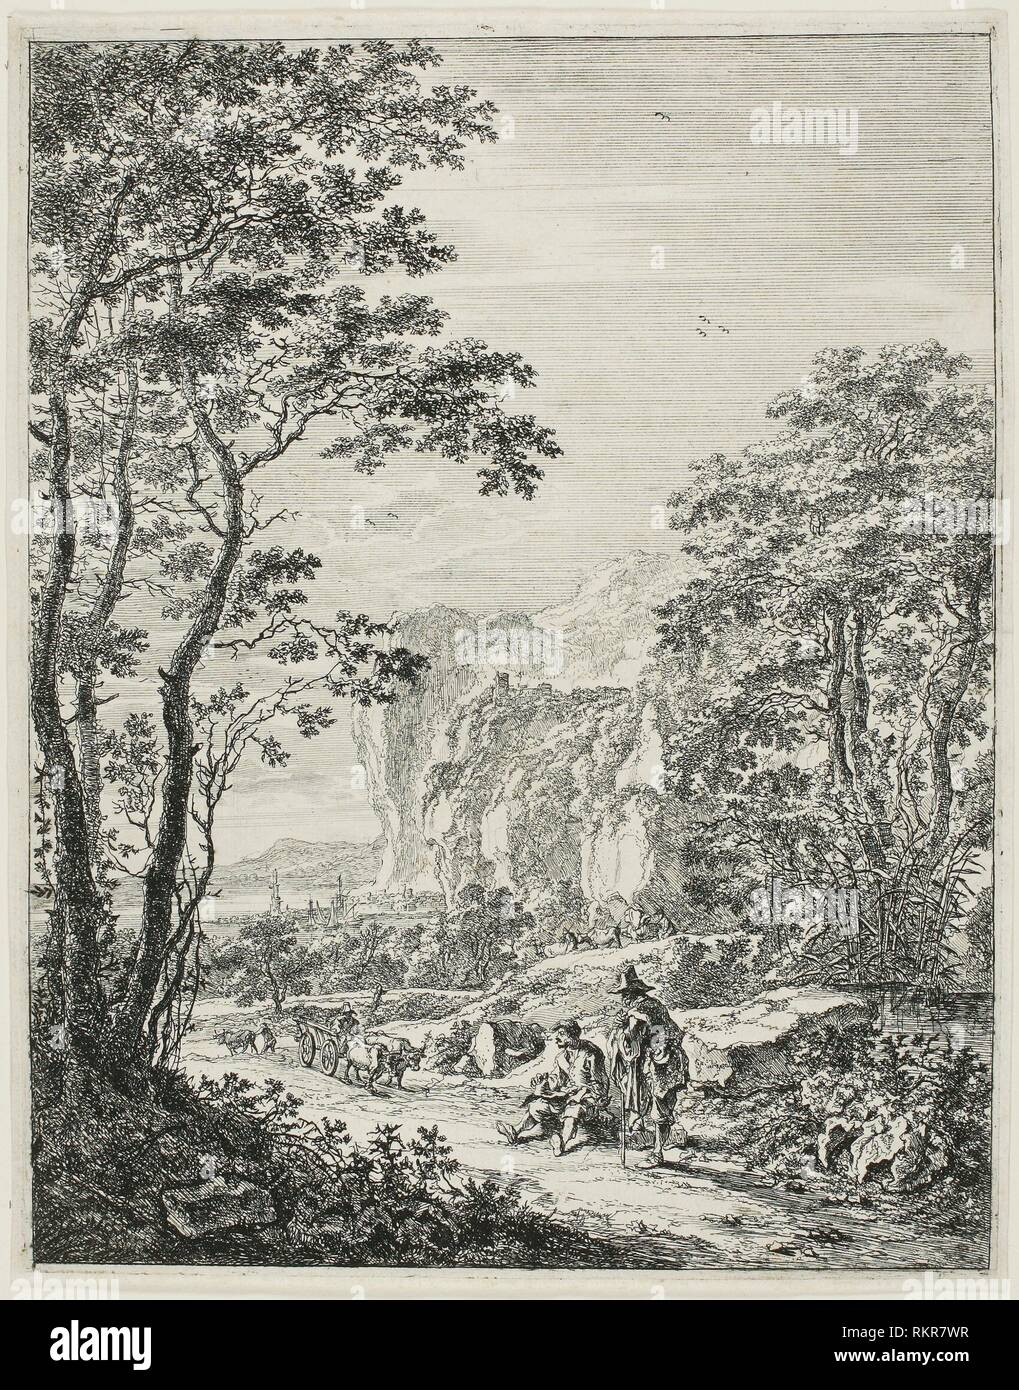 The Ox-Cart, from Upright Italian Landscapes - 1638/52 - Jan Both